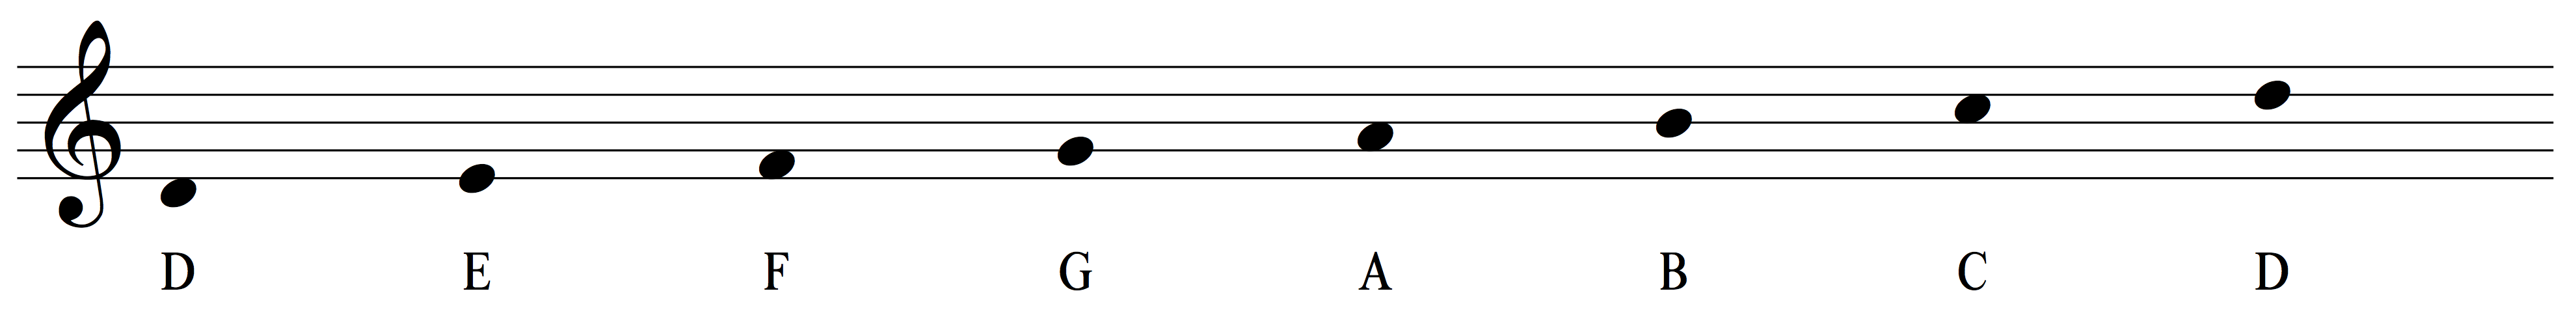 The ultimate guide to the dorian mode musical u if you want to dive in deeper into what makes dorian dorian basic music theory lays out all the mechanics of the mode hexwebz Choice Image